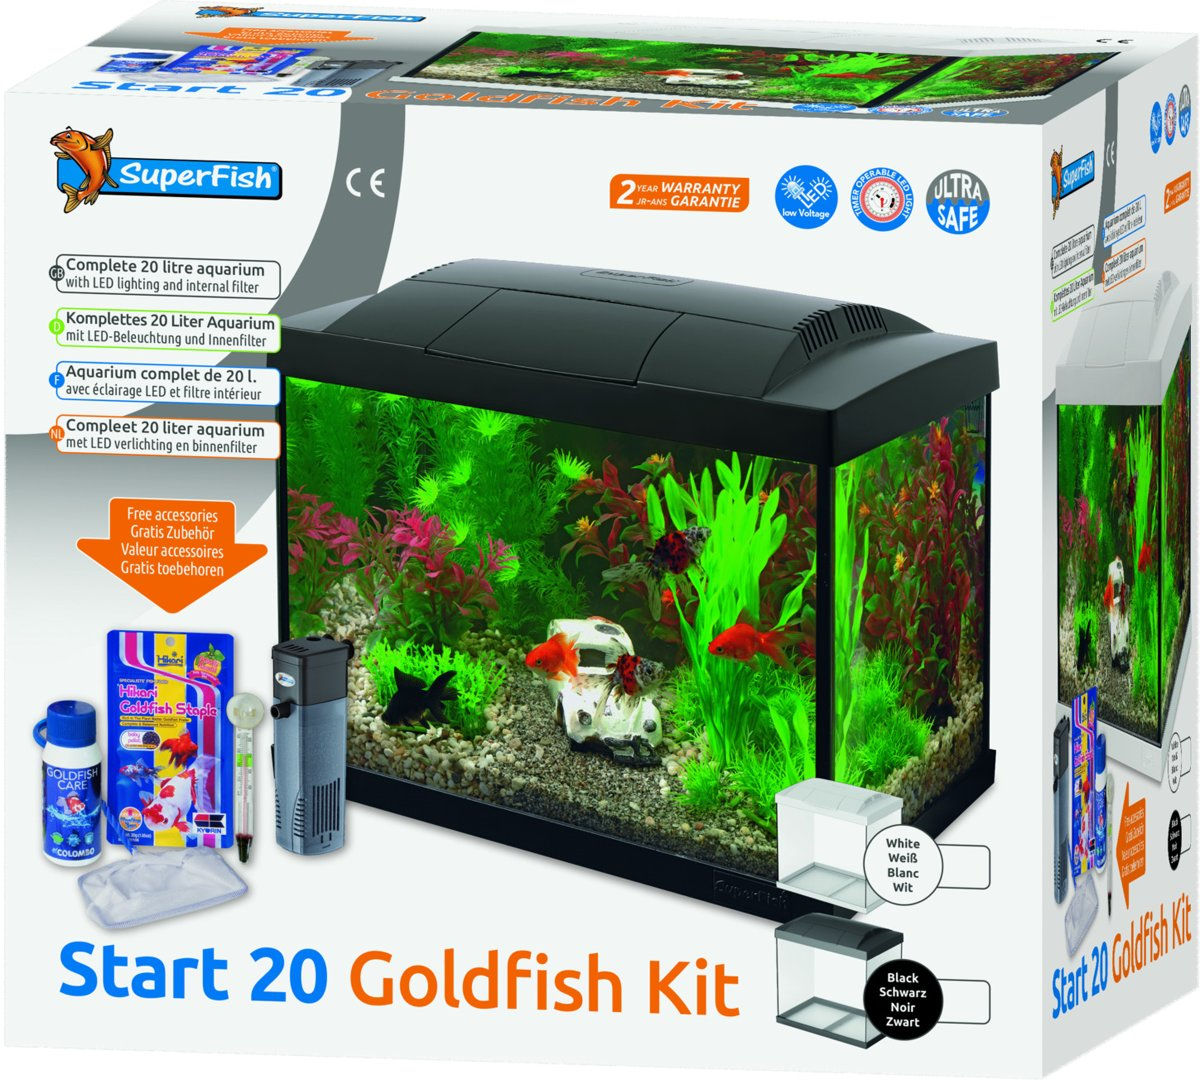 Aquarium Verlichting 30 Cm Superfish Start 20 Goldfish Kit Aquarium Led 20 L Zwart 36 X 23 X 32 1